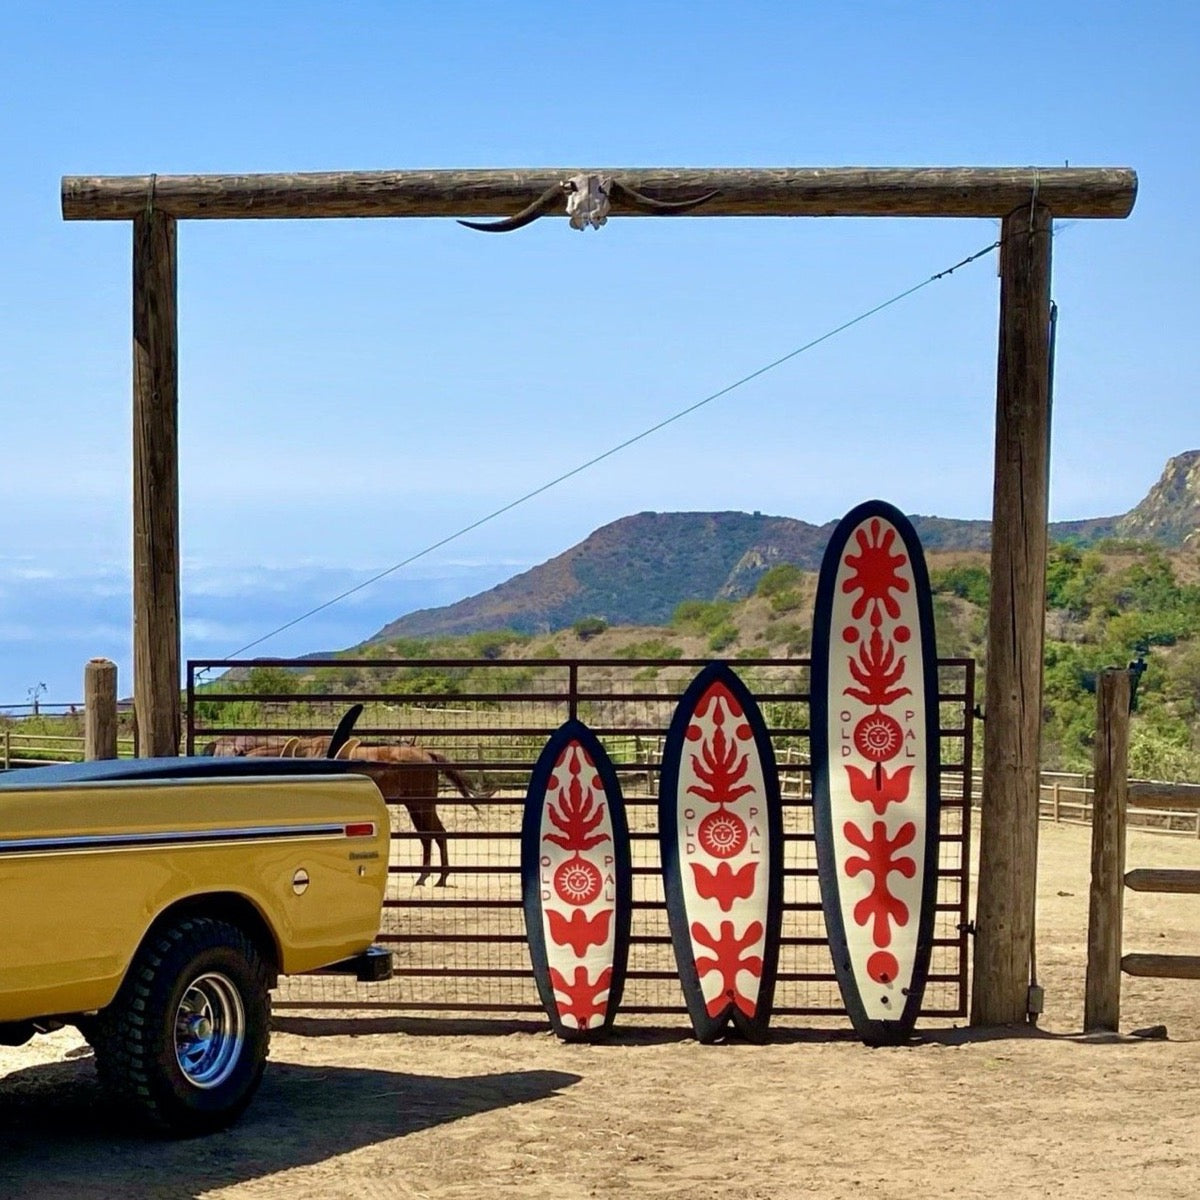 Old Pal Album Soft Top Surfboards. There is a small one on the left, a medium size on in the middle, and a long board on the right. They all have a blank trim around the boarder. The. middle has a red flower design with a tan background.